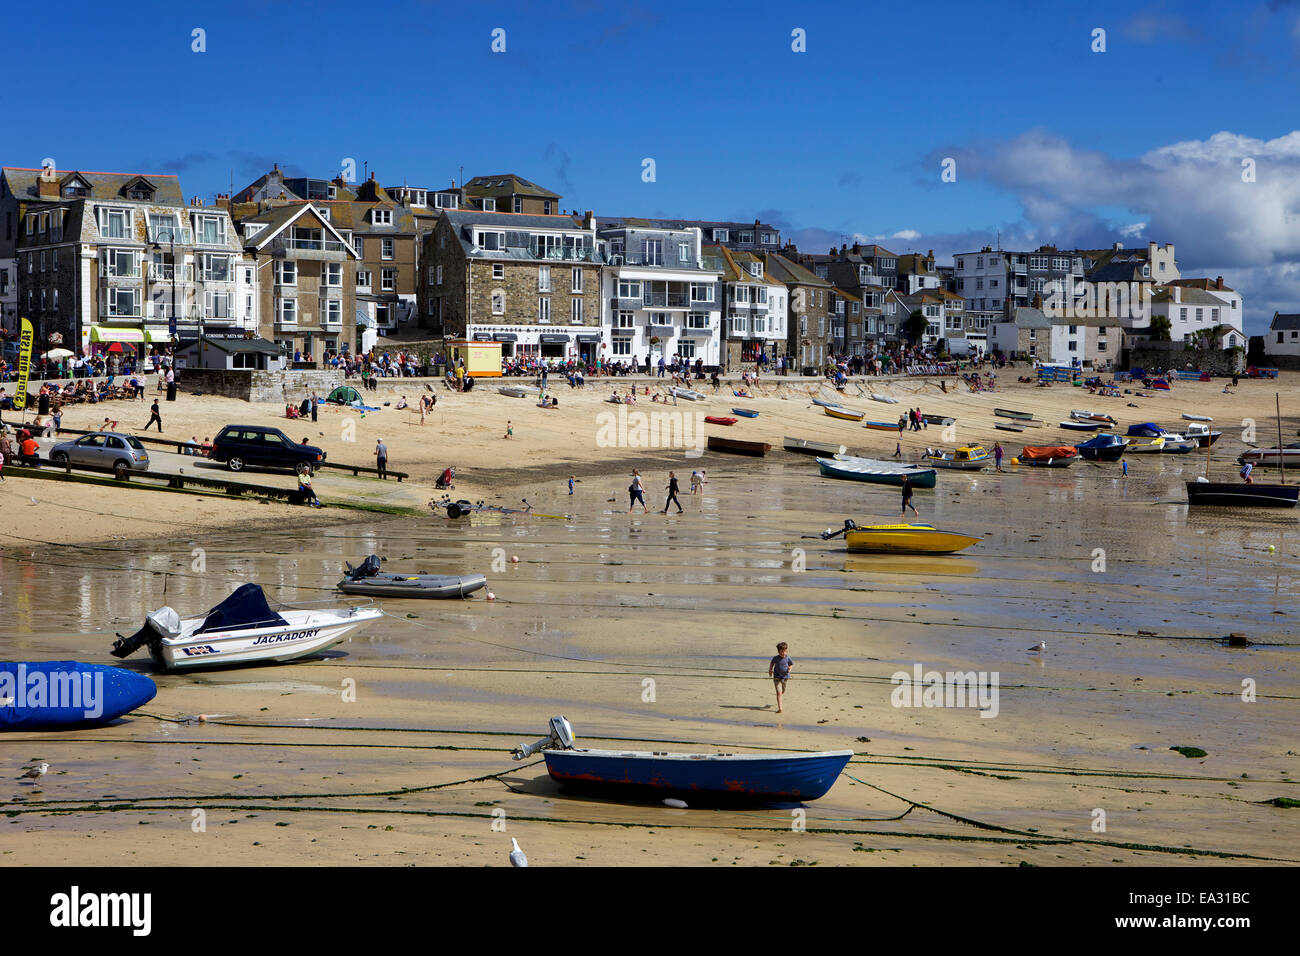 Boats in St. Ives harbour at low tide, St. Ives, Cornwall, England, United Kingdom, Europe Stock Photo